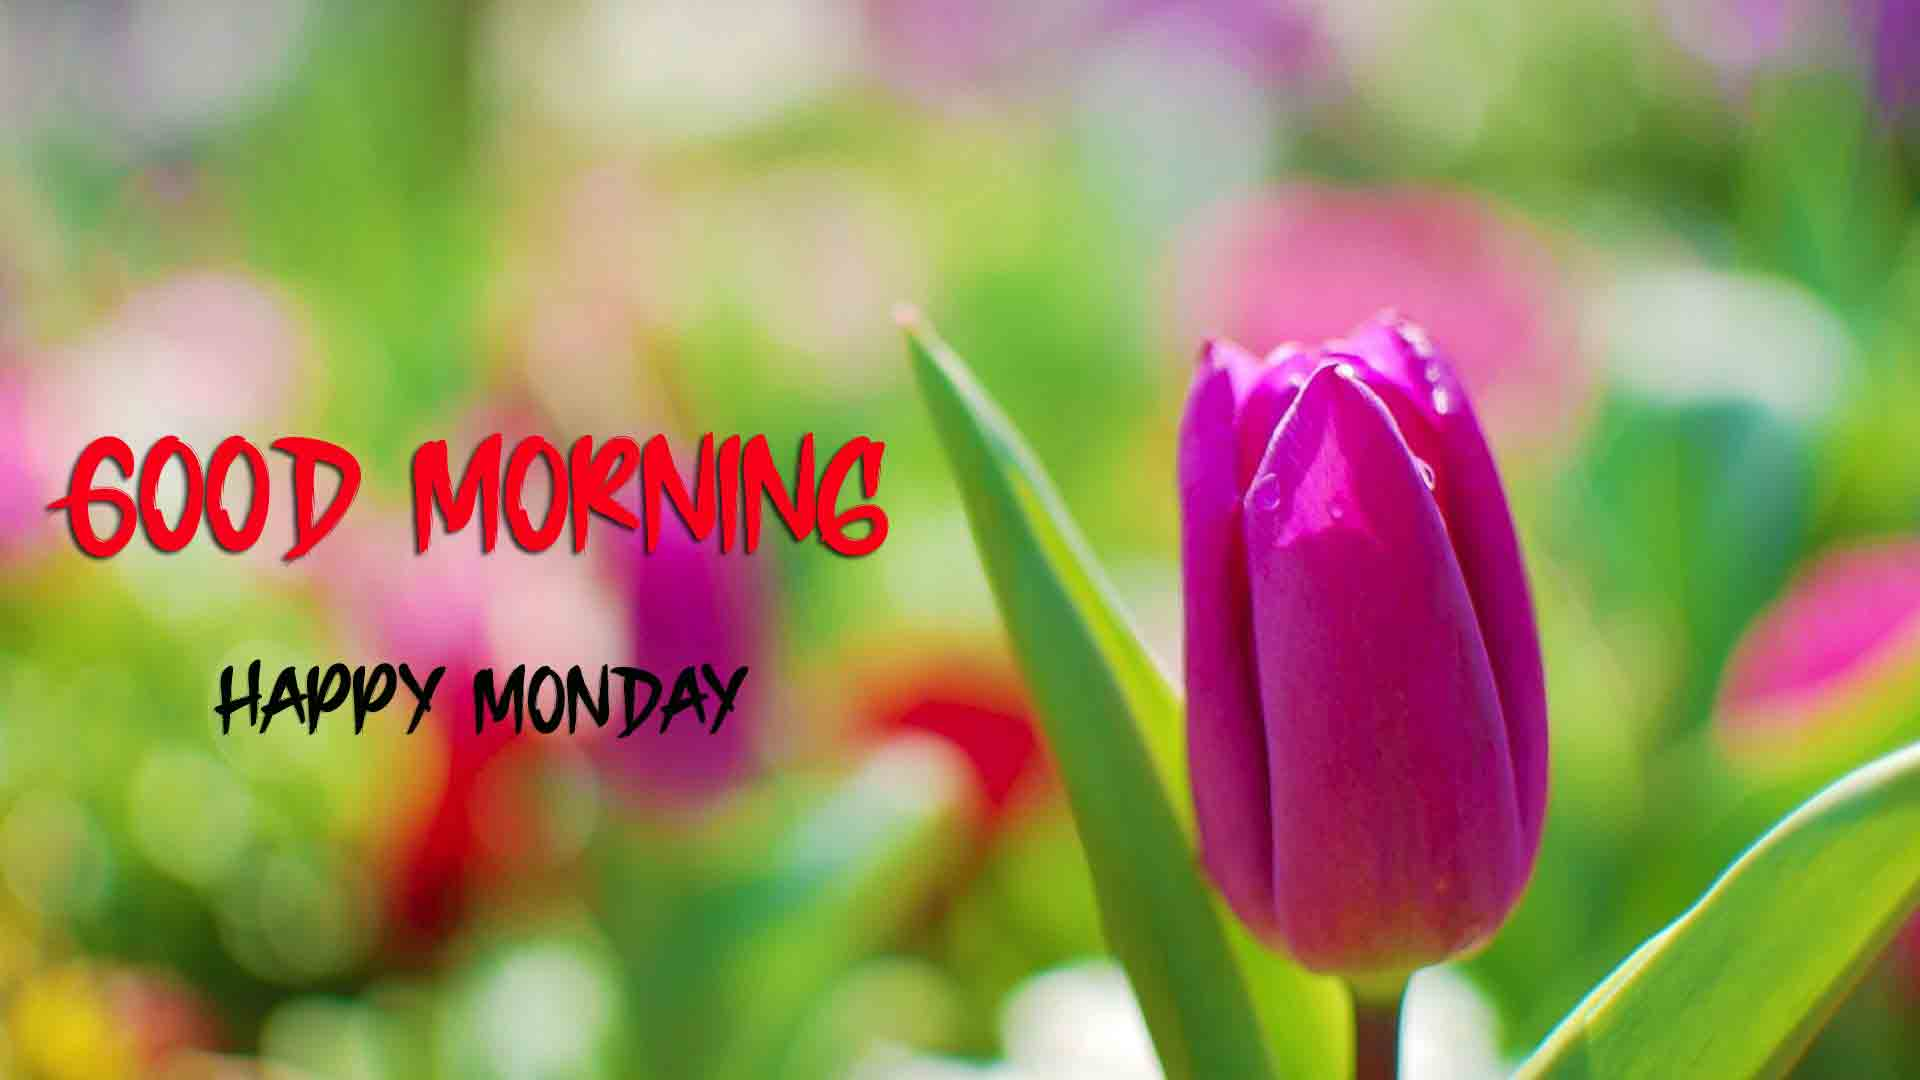 Monday Good Morning Images photo for friends